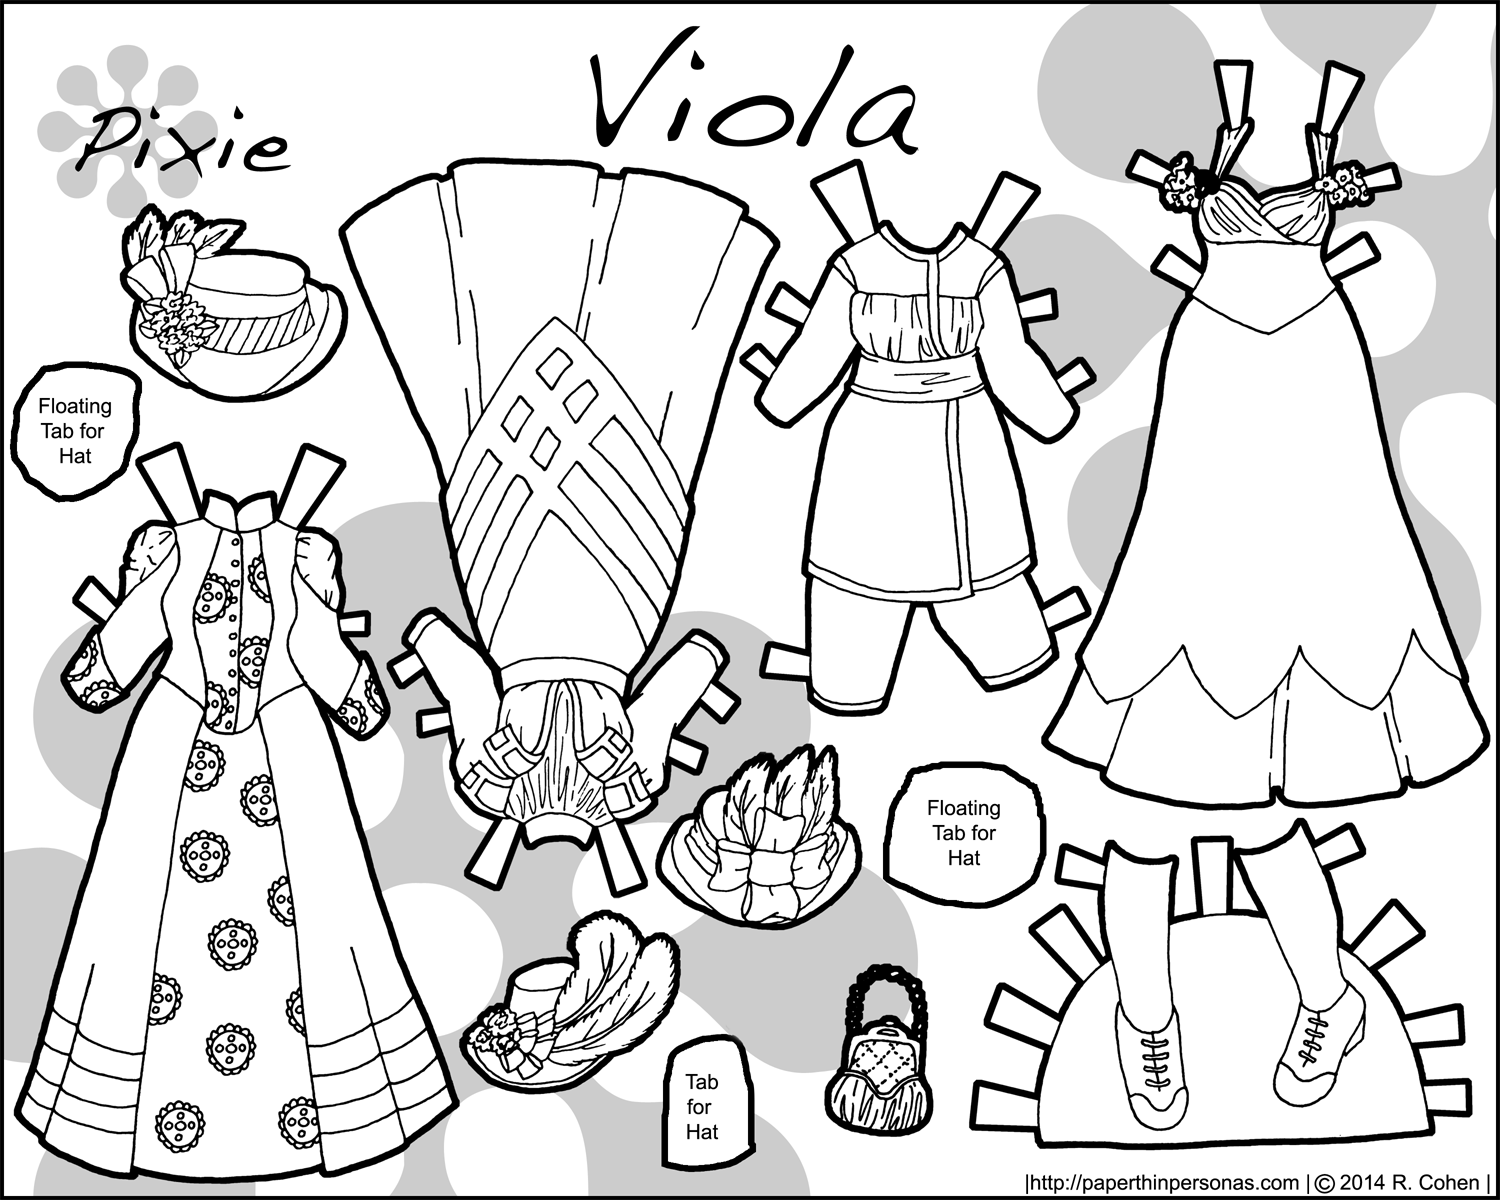 An 1890s paper doll wardrobe to print and color for free from paperthinpersonas.com